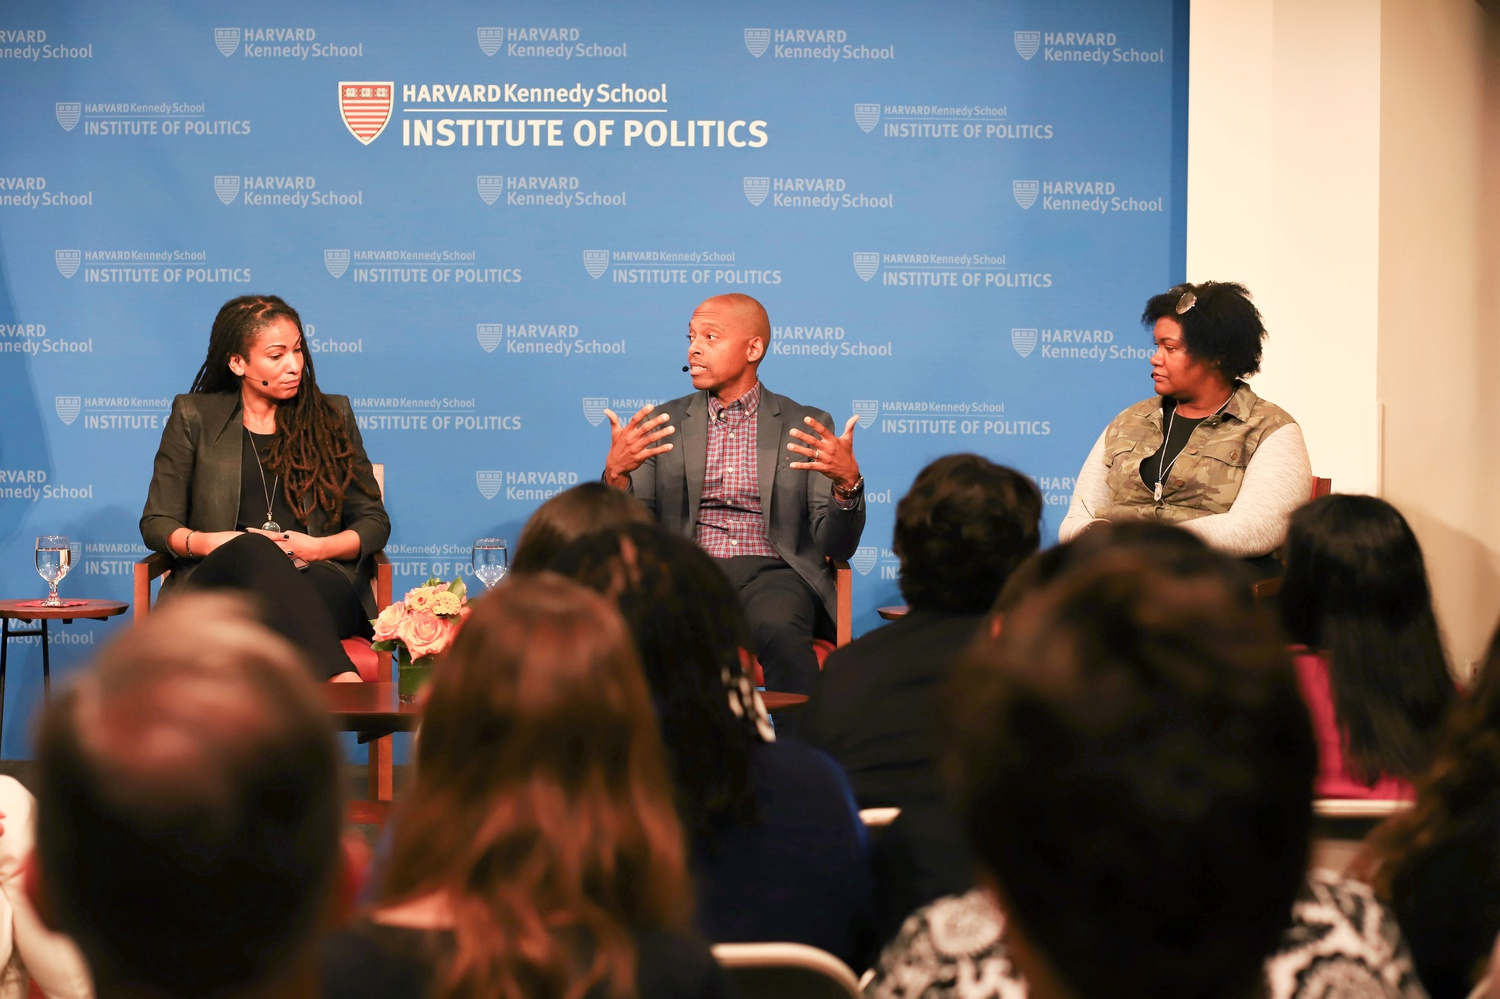 Ruha Benjamin, Khalil G. Muhammad,  Latoya Peterson, and Joan Donovan discuss race, technology, media, and policy at the IOP on Wednesday evening.